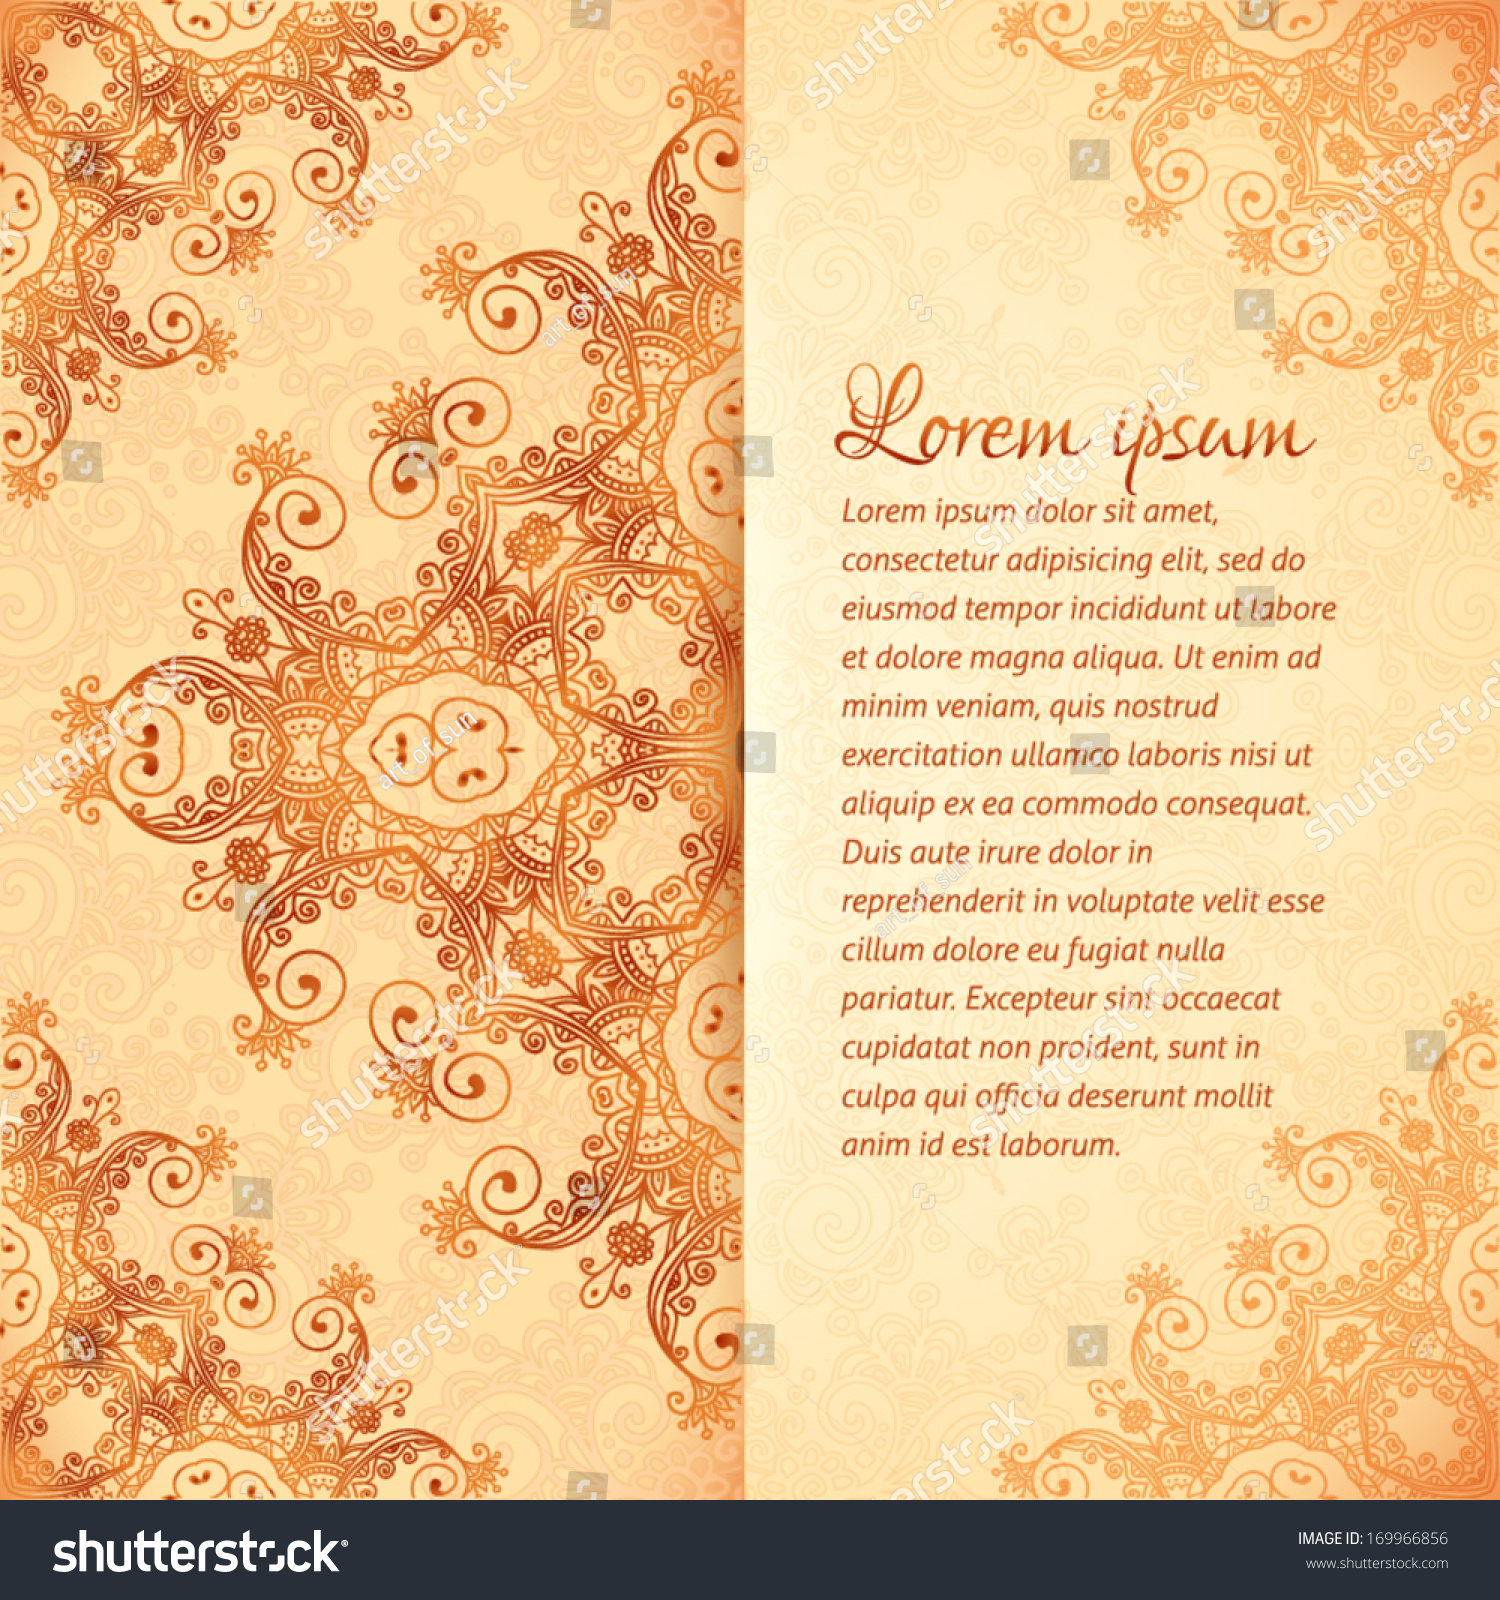 Ornate vintage vector background in mehndi style royalty free stock - Ornate Vintage Vector Card Template In Indian Mehndi Style